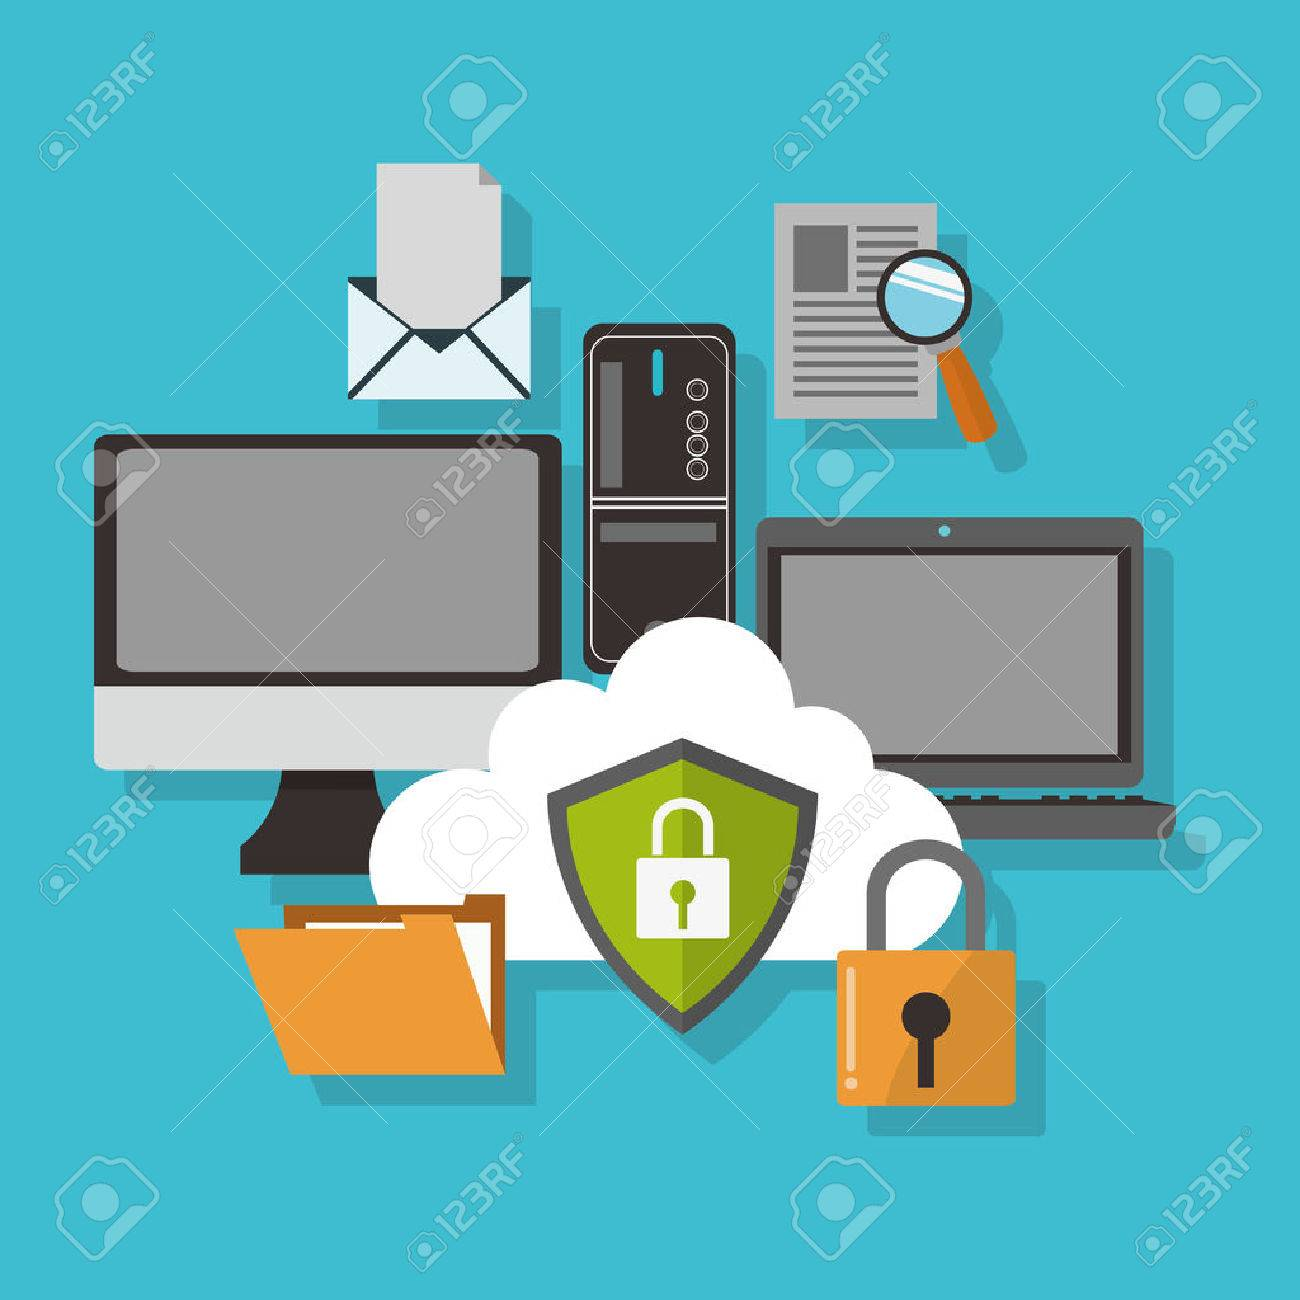 Cyber concept with security design, vector illustration 10 eps graphic. - 51645808